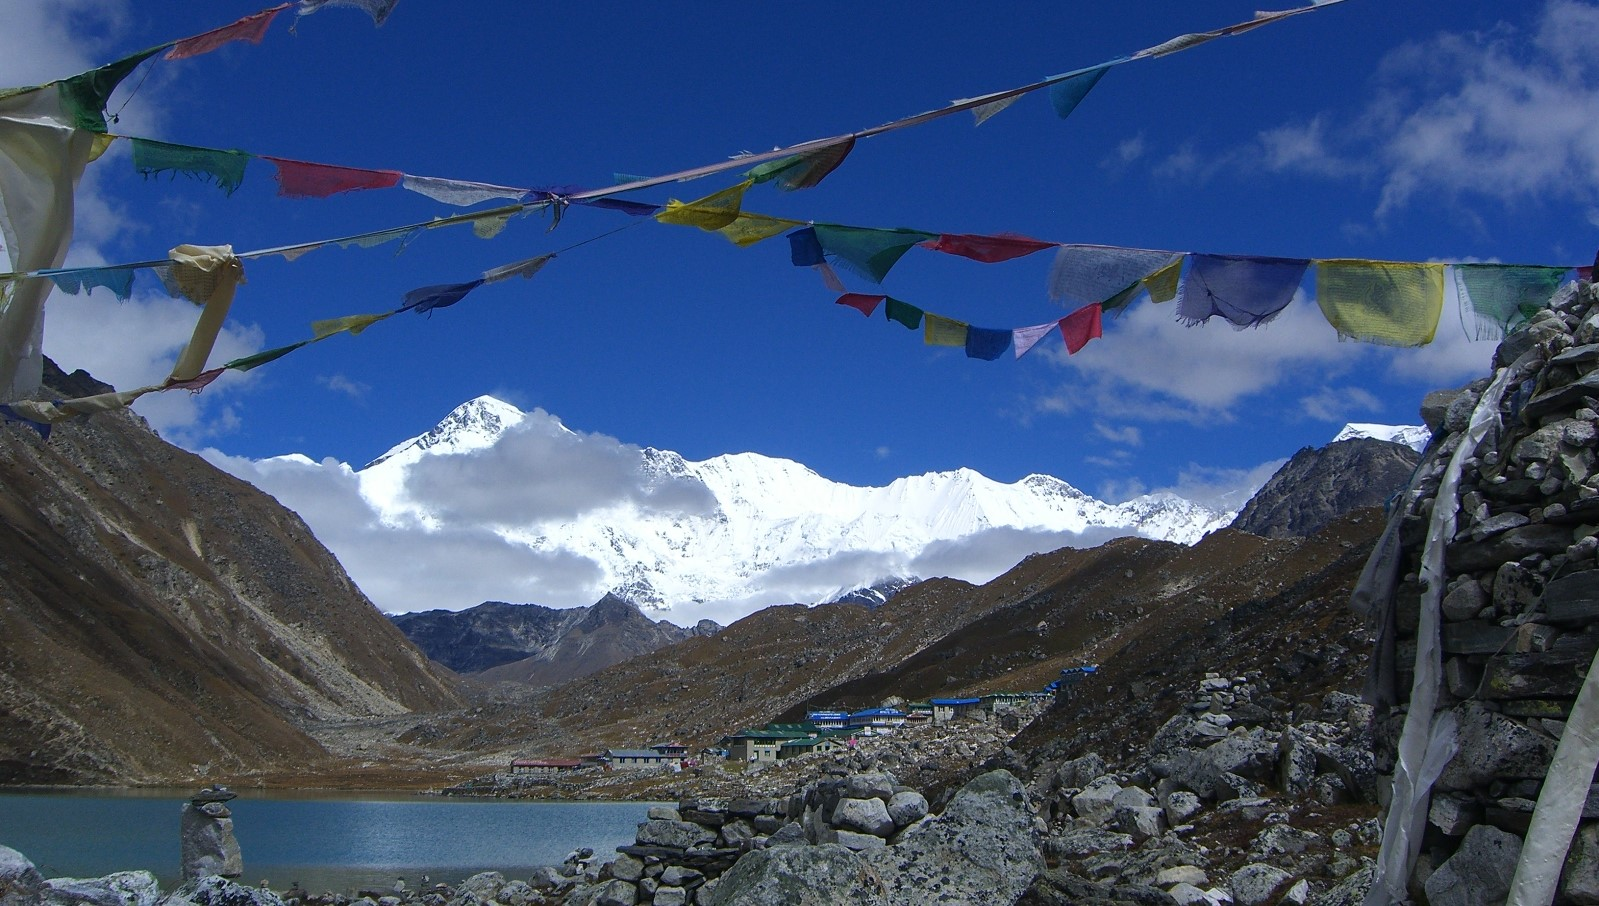 buntings hanged beside a pile of rocks and a view of Himalaya mountains from building structures